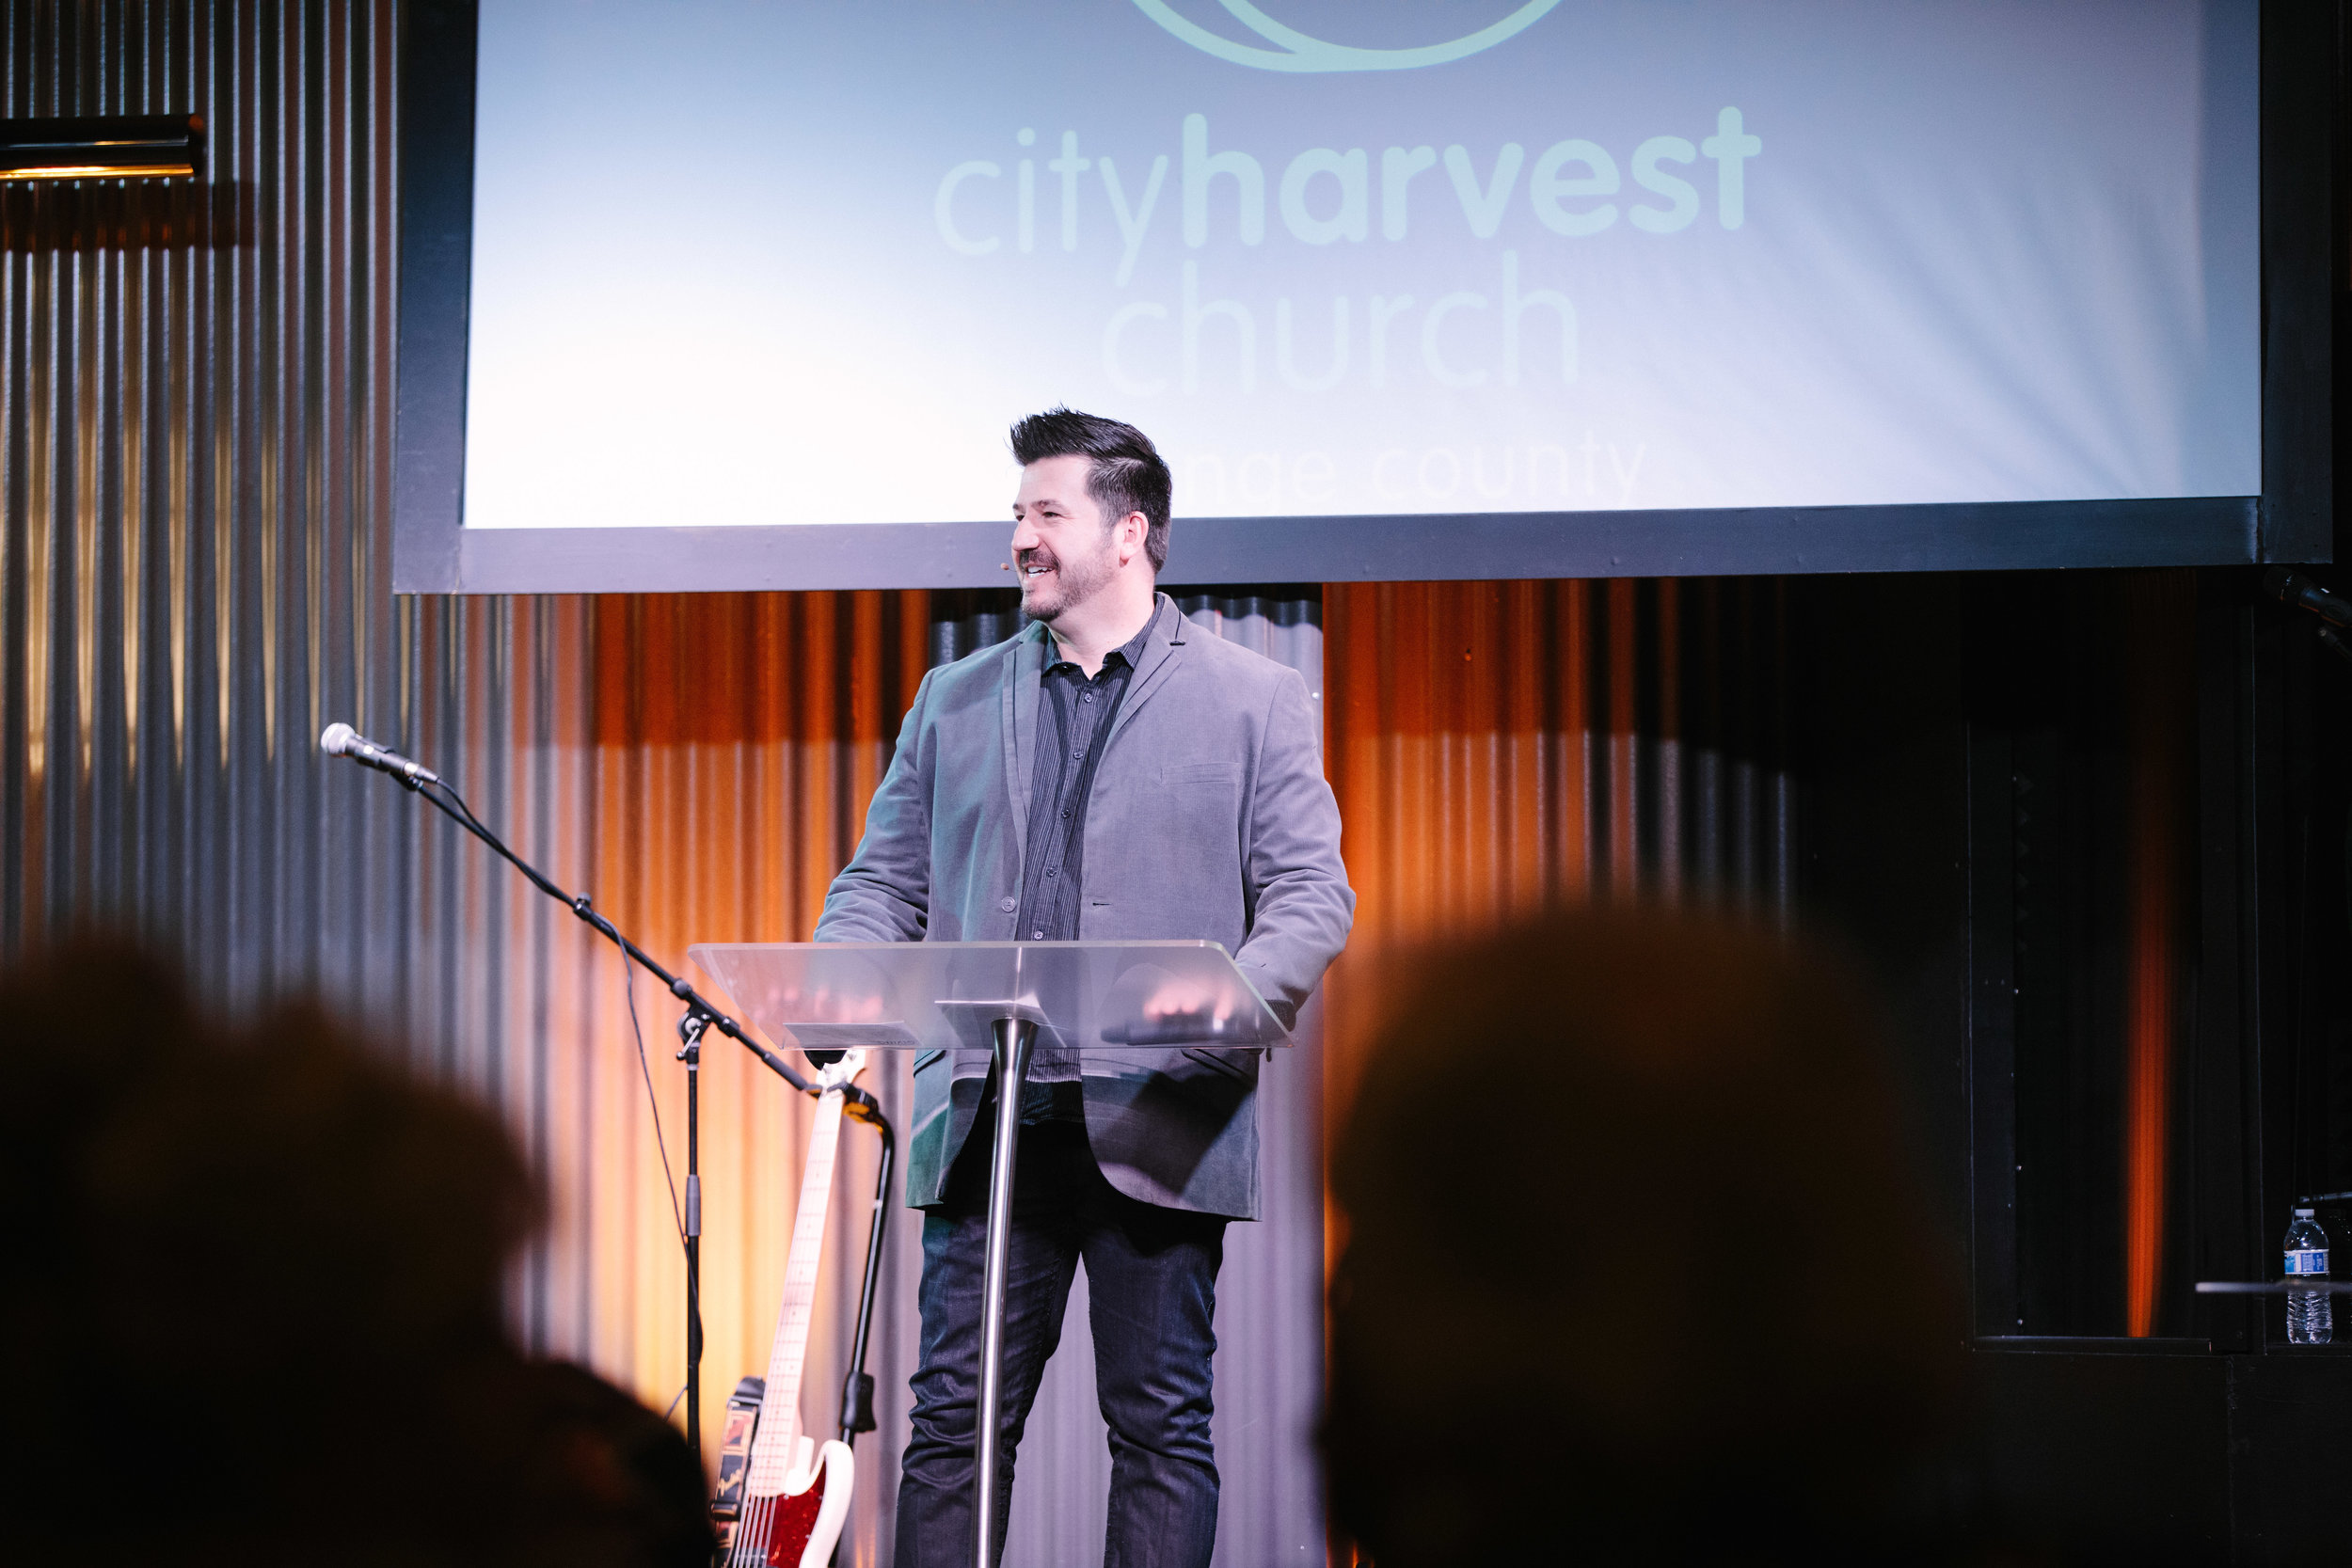 Inspiring Messages - The messages you will hear during our Sunday service are always biblically-based, faith-filled, practical and heartfelt in order to help you grow in your walk with God and relationship with others.